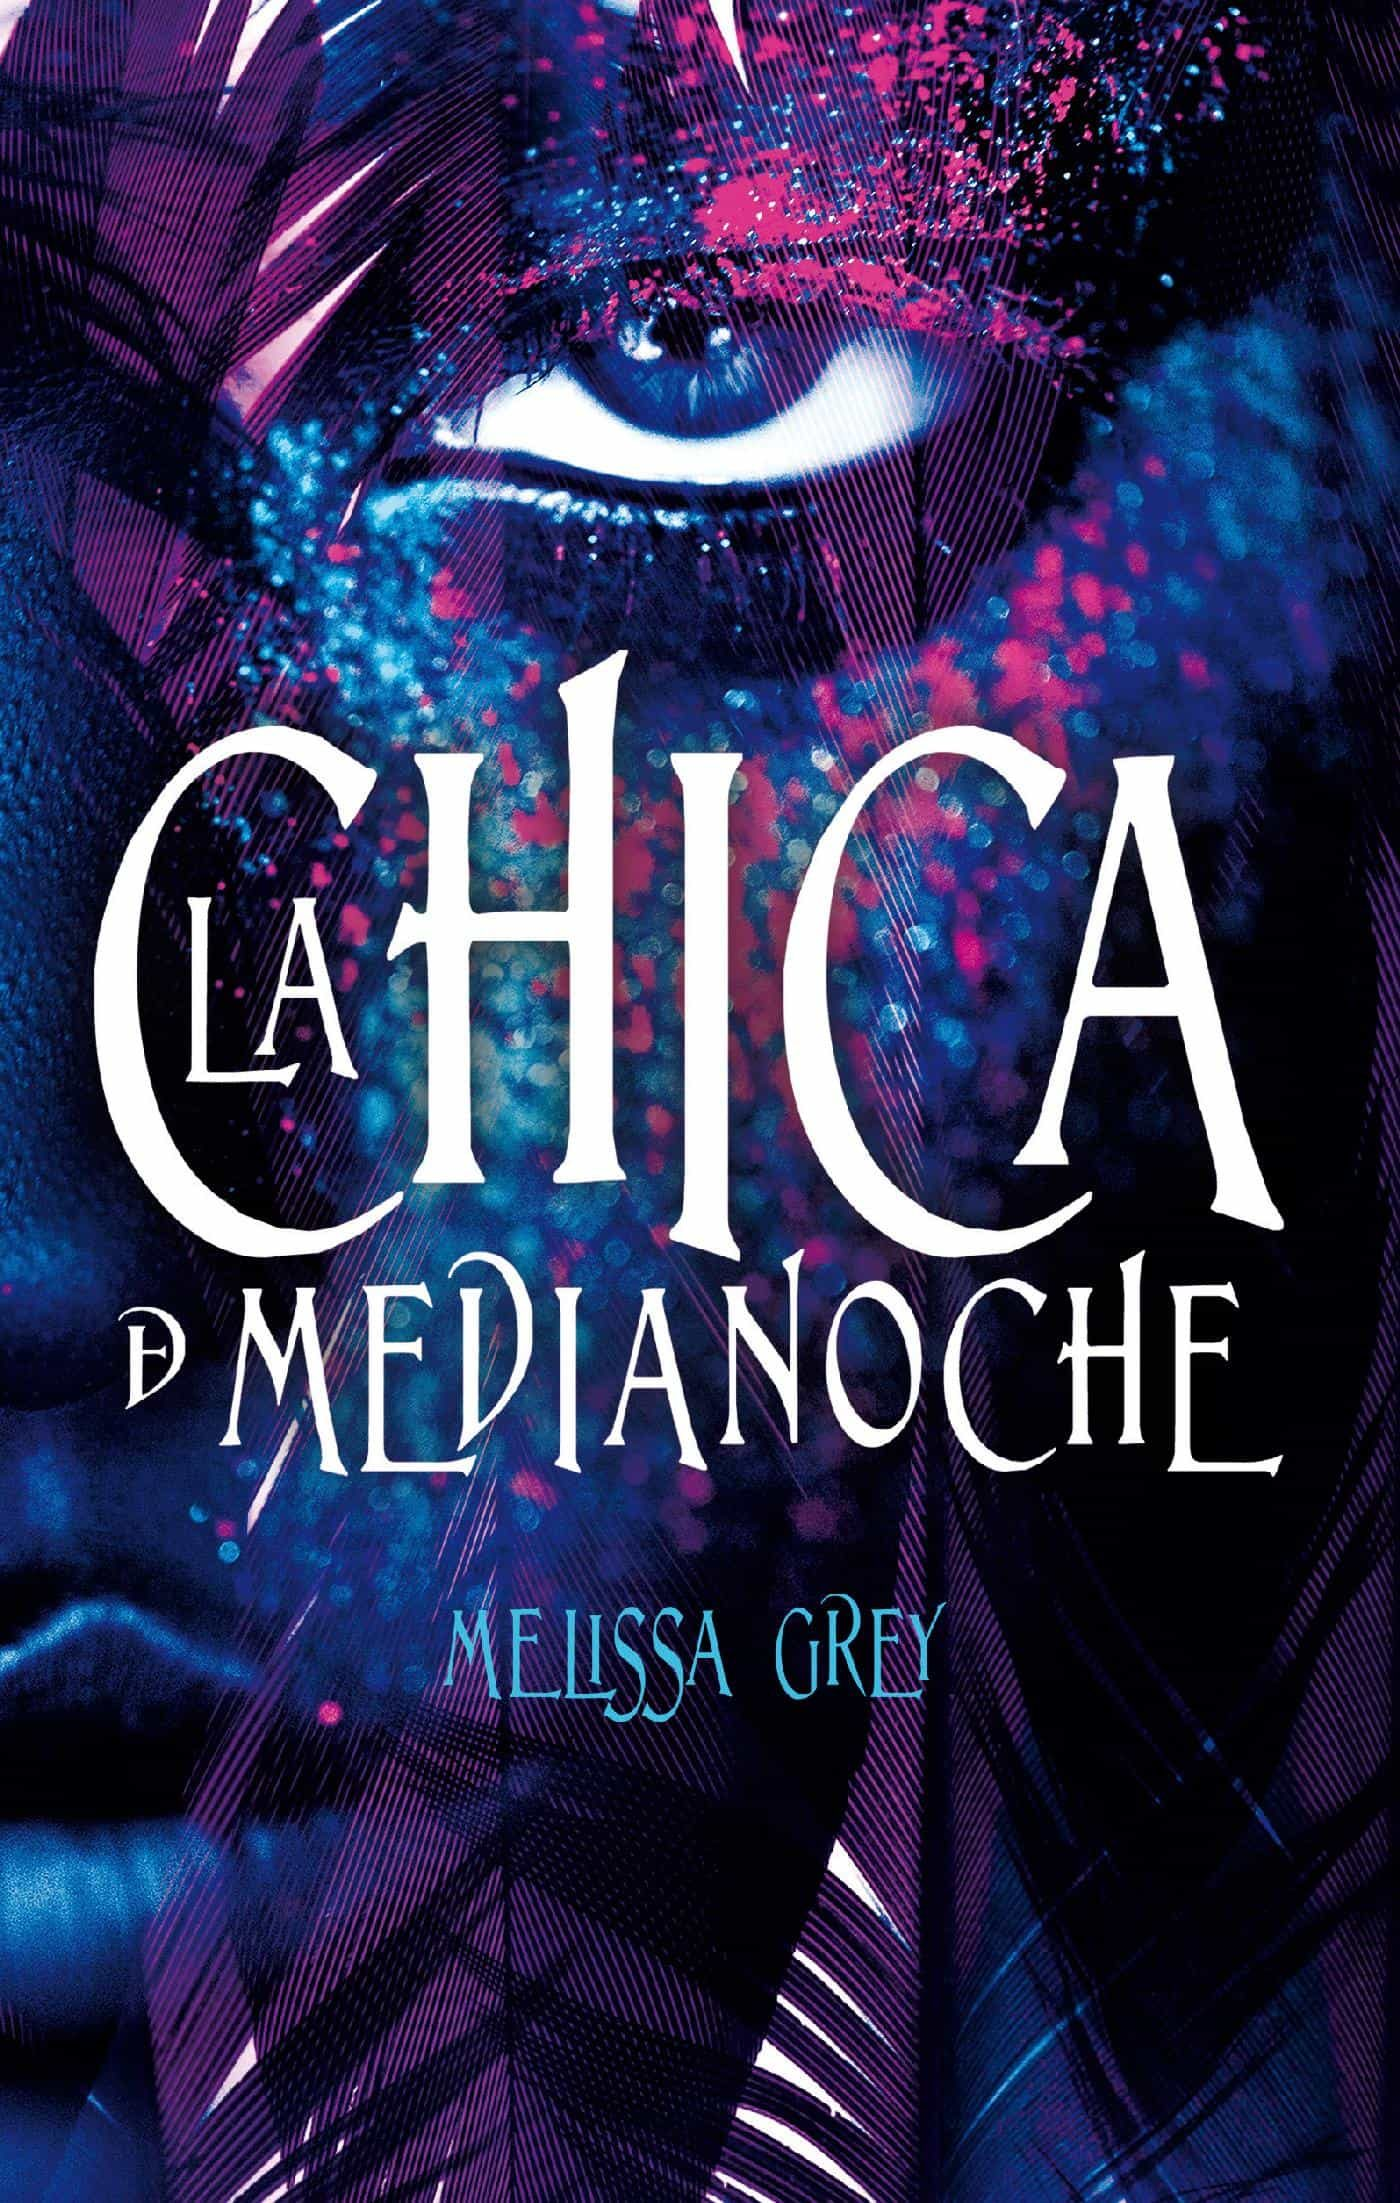 Grey Libro Pdf La Chica De Medianoche Ebook Melissa Grey Descargar Libro Pdf O Epub 9788499449401